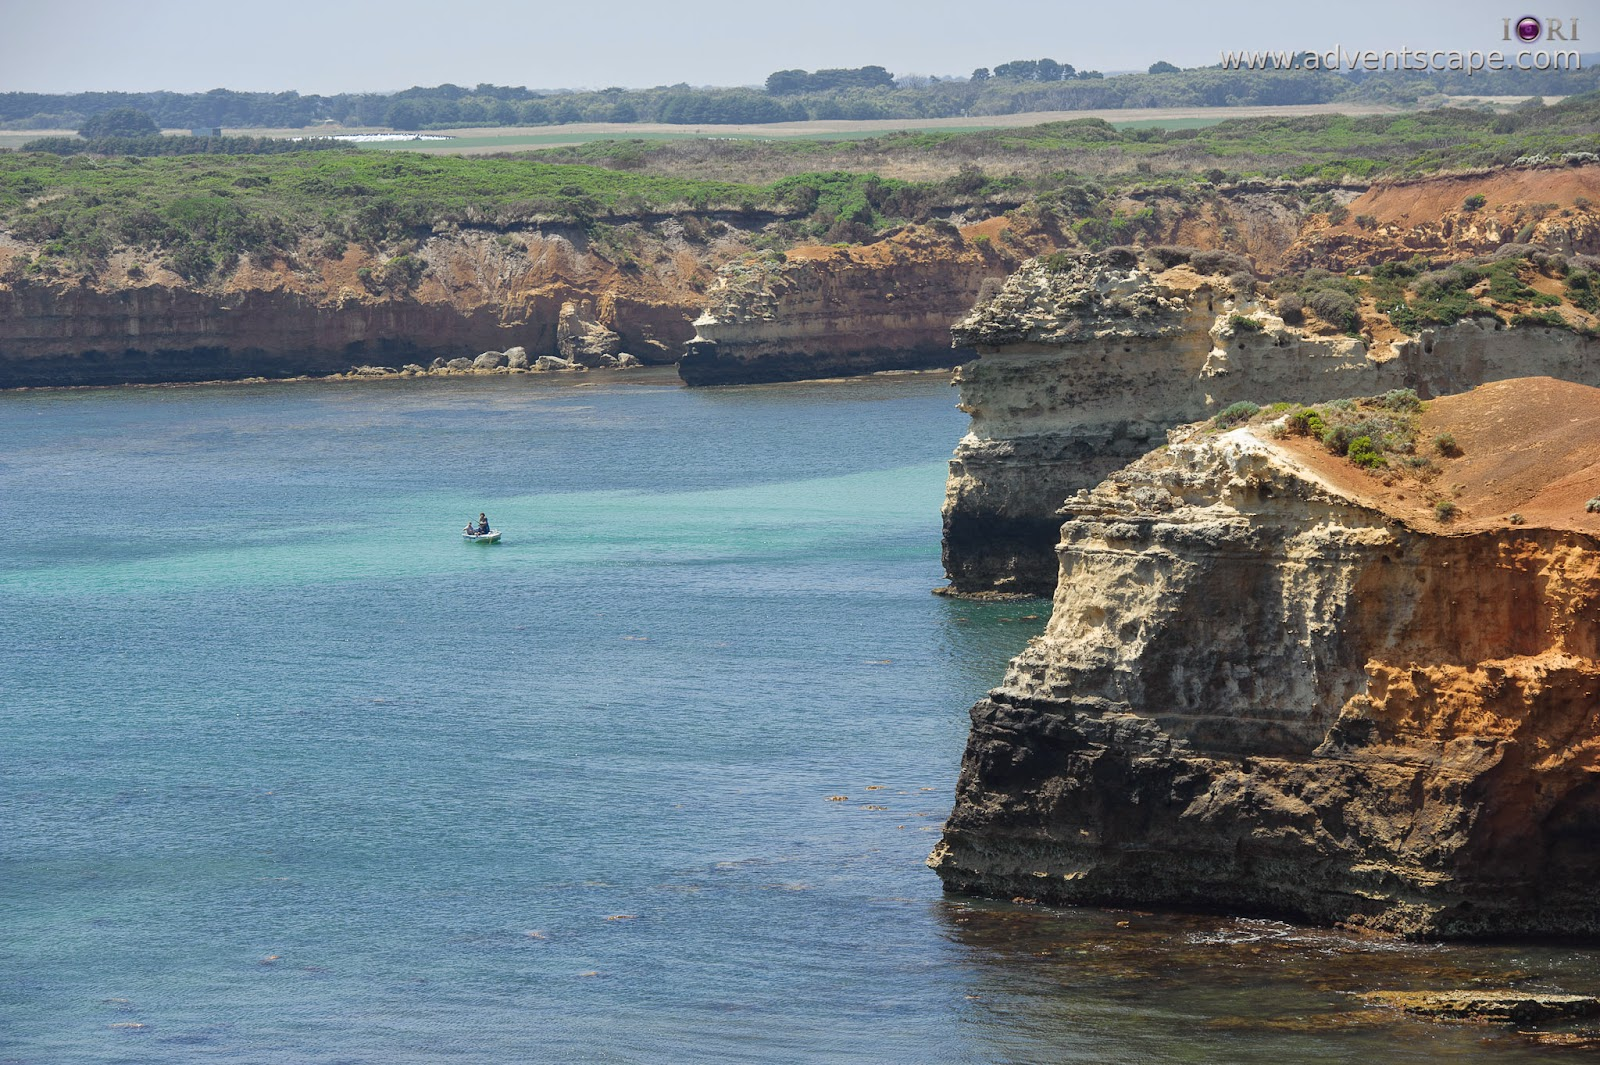 australia, Australian Landscape Photographer, Bay of Islands, Great Ocean Road, Peterborough, Philip Avellana, victoria, Warrnambool, rock formation, coastline, Apollo Bay, boat, journey, fishing